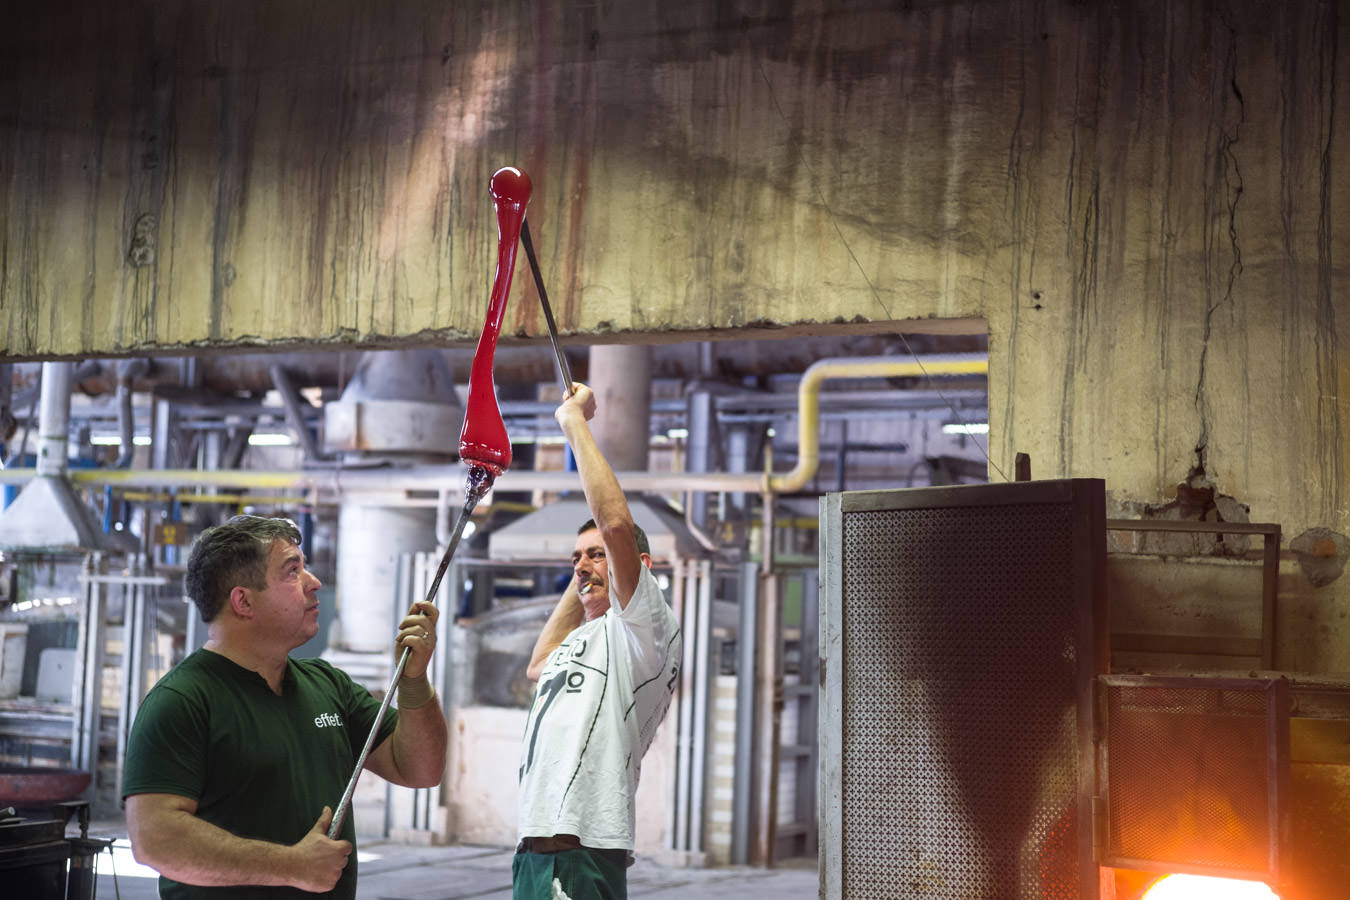 """It's always a pleasure when I am allowed to go inside  a glass factory in Murano . For security reasons, these places are """"off limits"""" for everybody, but sometimes I find a way through and I spend a morning taking pictures of  very ancient art . This is the making of the glass cane that hides the colored  """"Murrine"""" , the images or patterns made with glass. These patterns (since the  Roman empire ) will widely be used for making jewelry, glass vessels, jars, and so on.  Picture taken with my Leica SL, Summicron 50mm, 1/200s f/2,8 iso 800."""